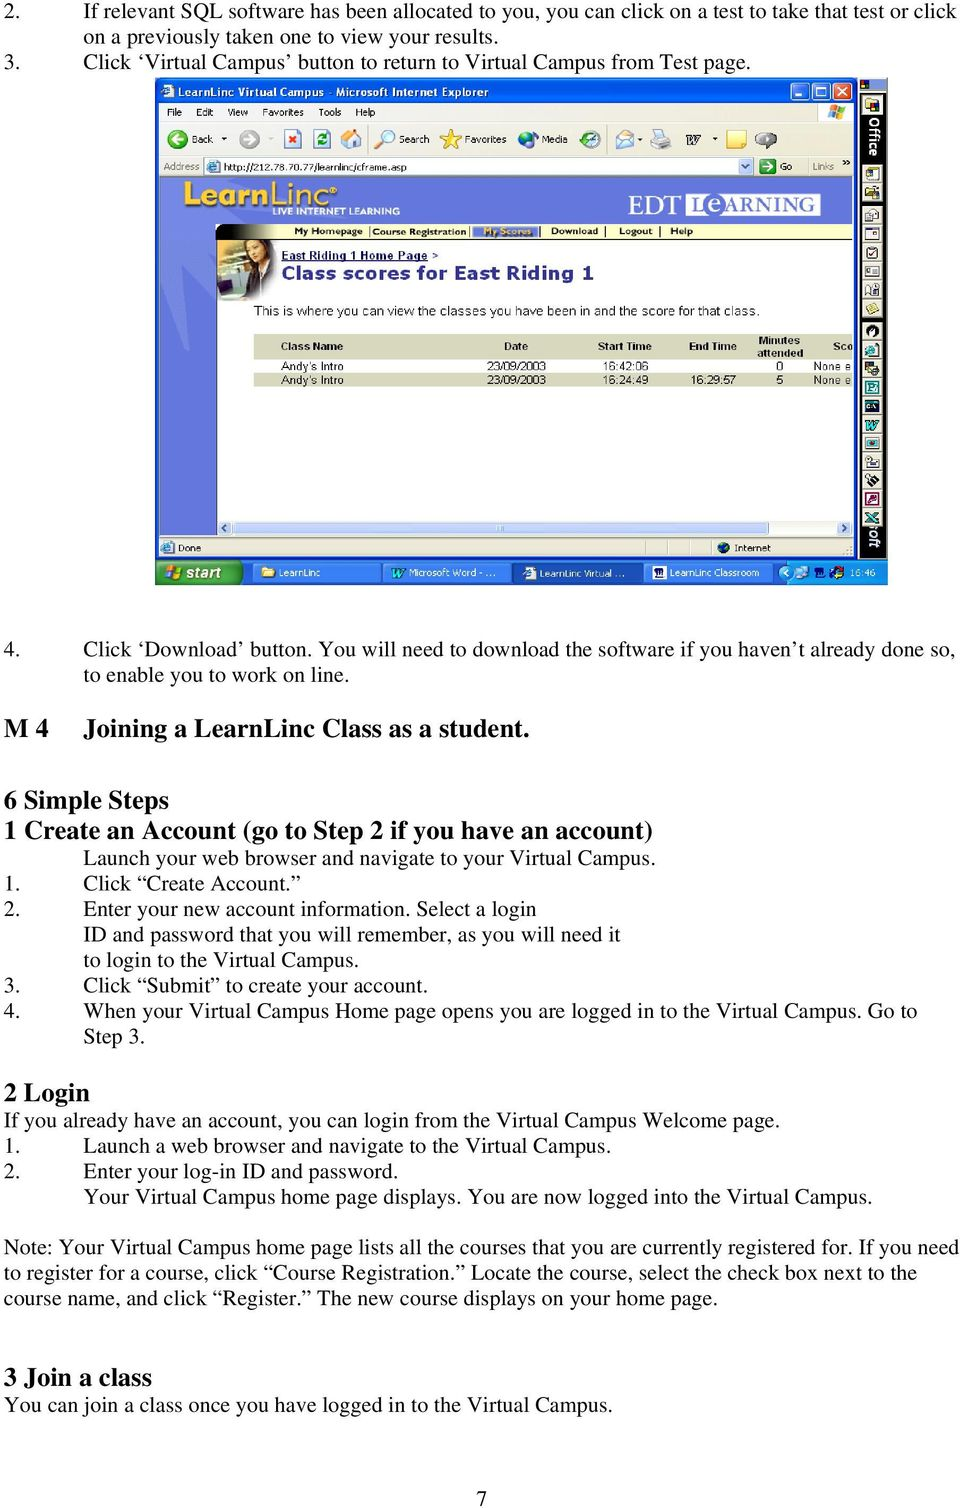 M 4 Joining a LearnLinc Class as a student. 6 Simple Steps 1 Create an Account (go to Step 2 if you have an account) Launch your web browser and navigate to your Virtual Campus. 1. Click Create Account.